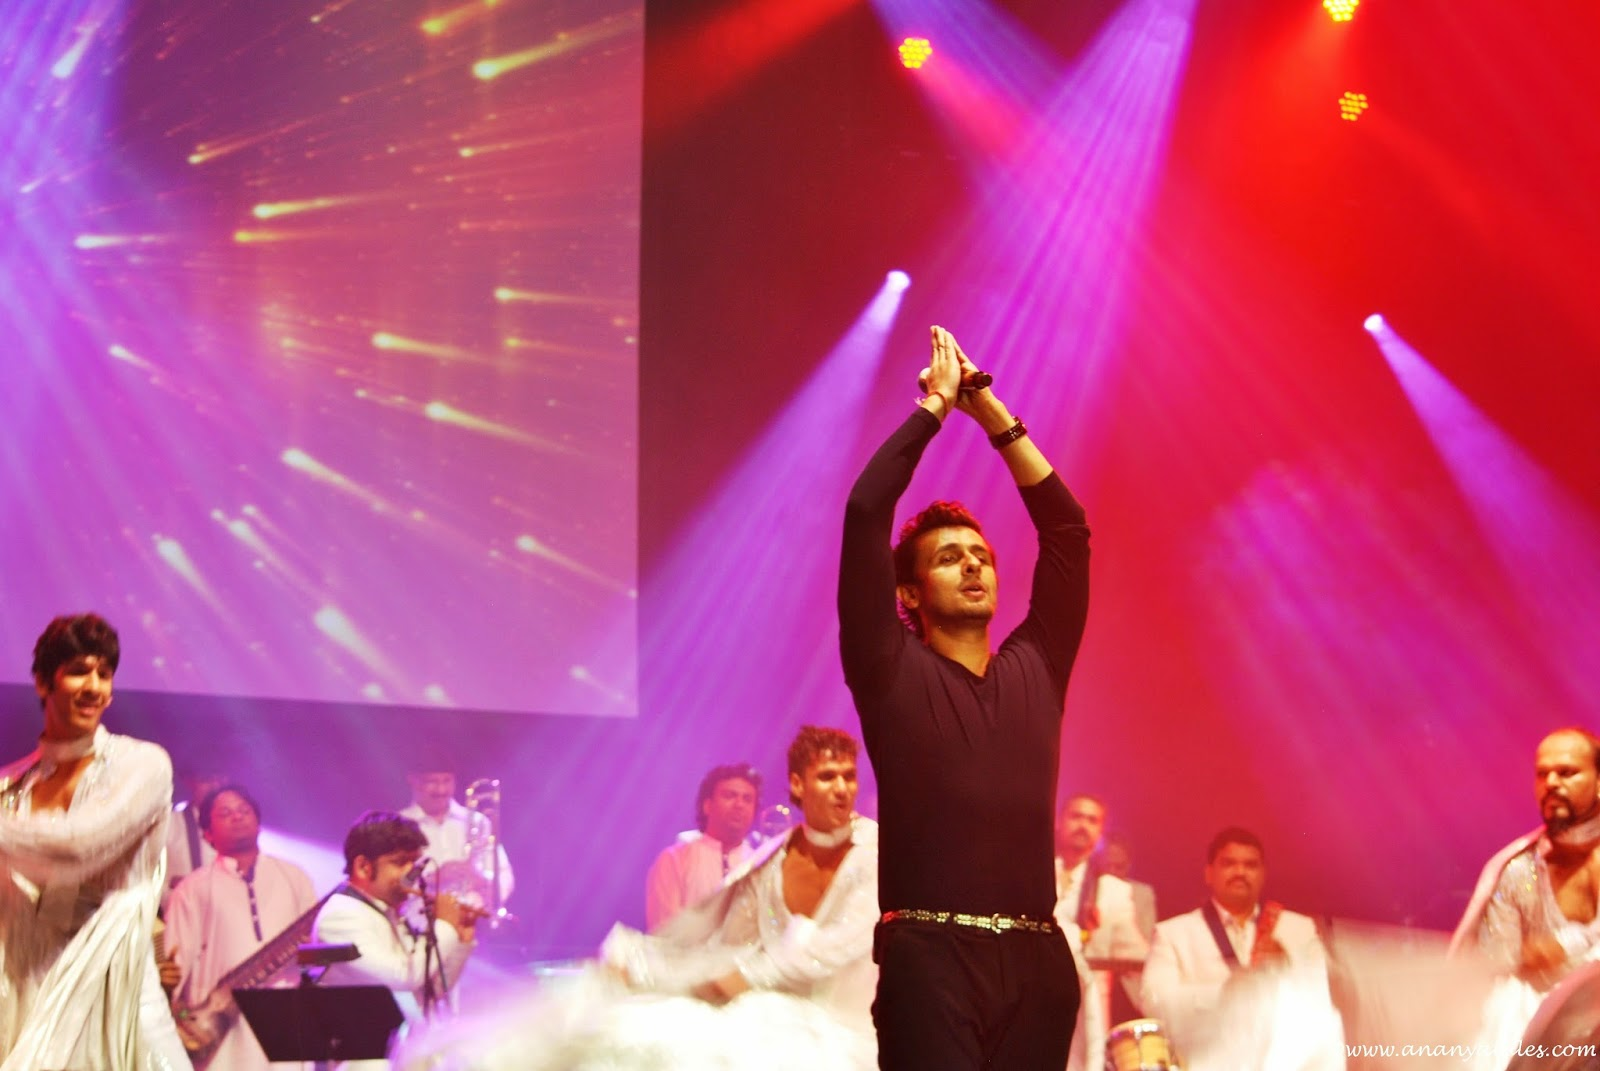 sonu nigam stage performance, sonu nigam in usa concerts, seattle indian events, sonu nigam in seattle